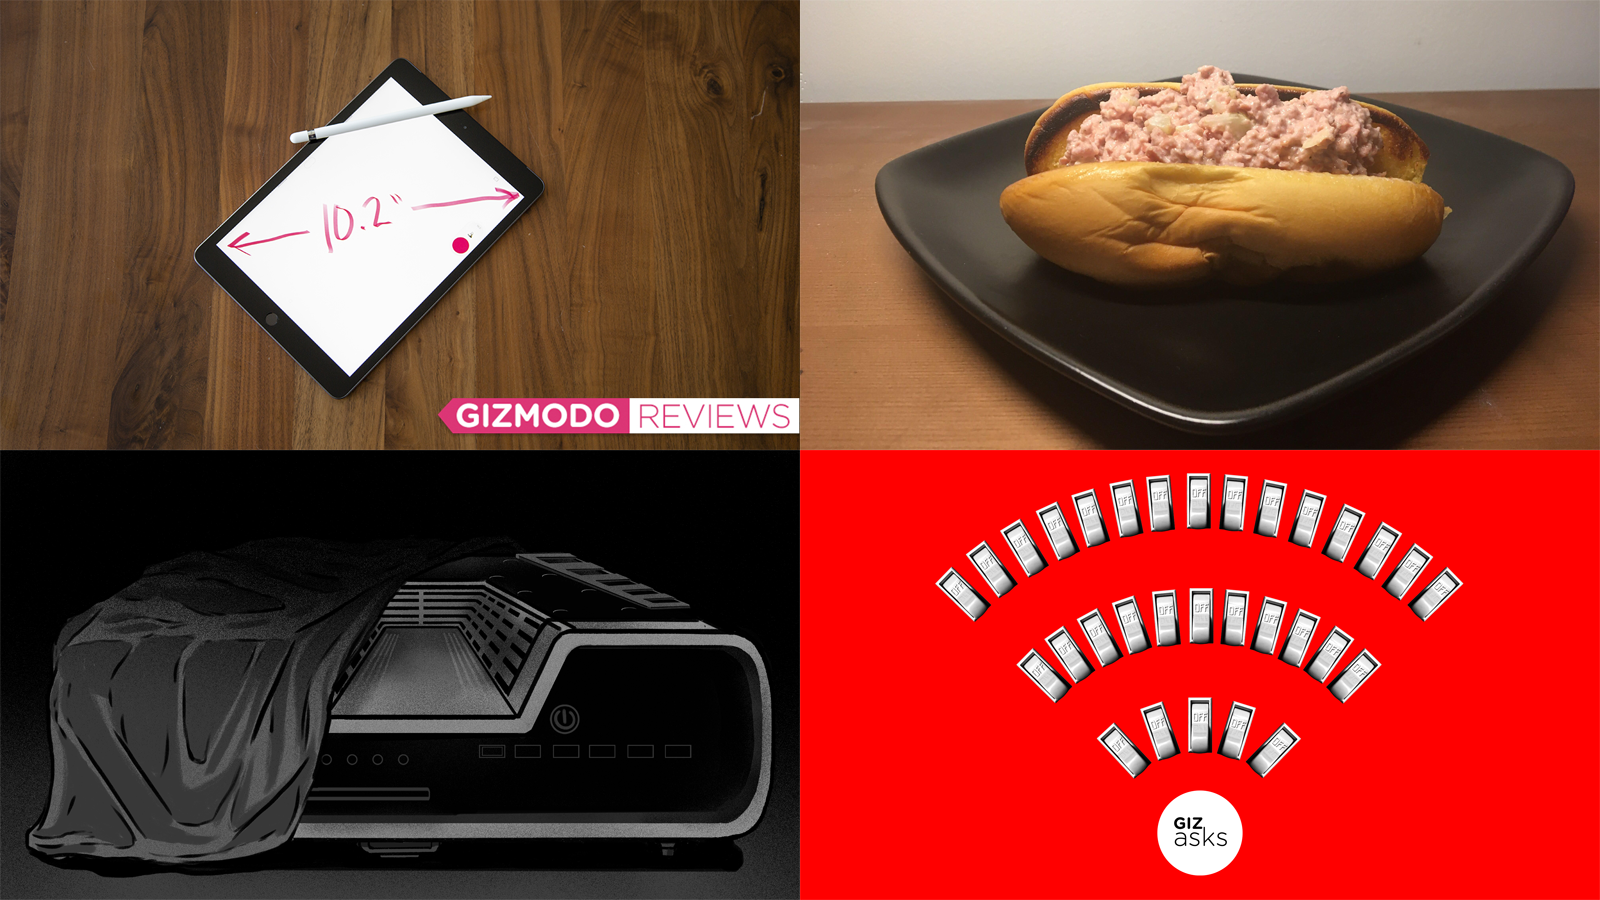 Deadly Fungus, Fat Bear Week, PS5 Leaks, and Hot Dog Salad: Best Gizmodo Stories of the Week